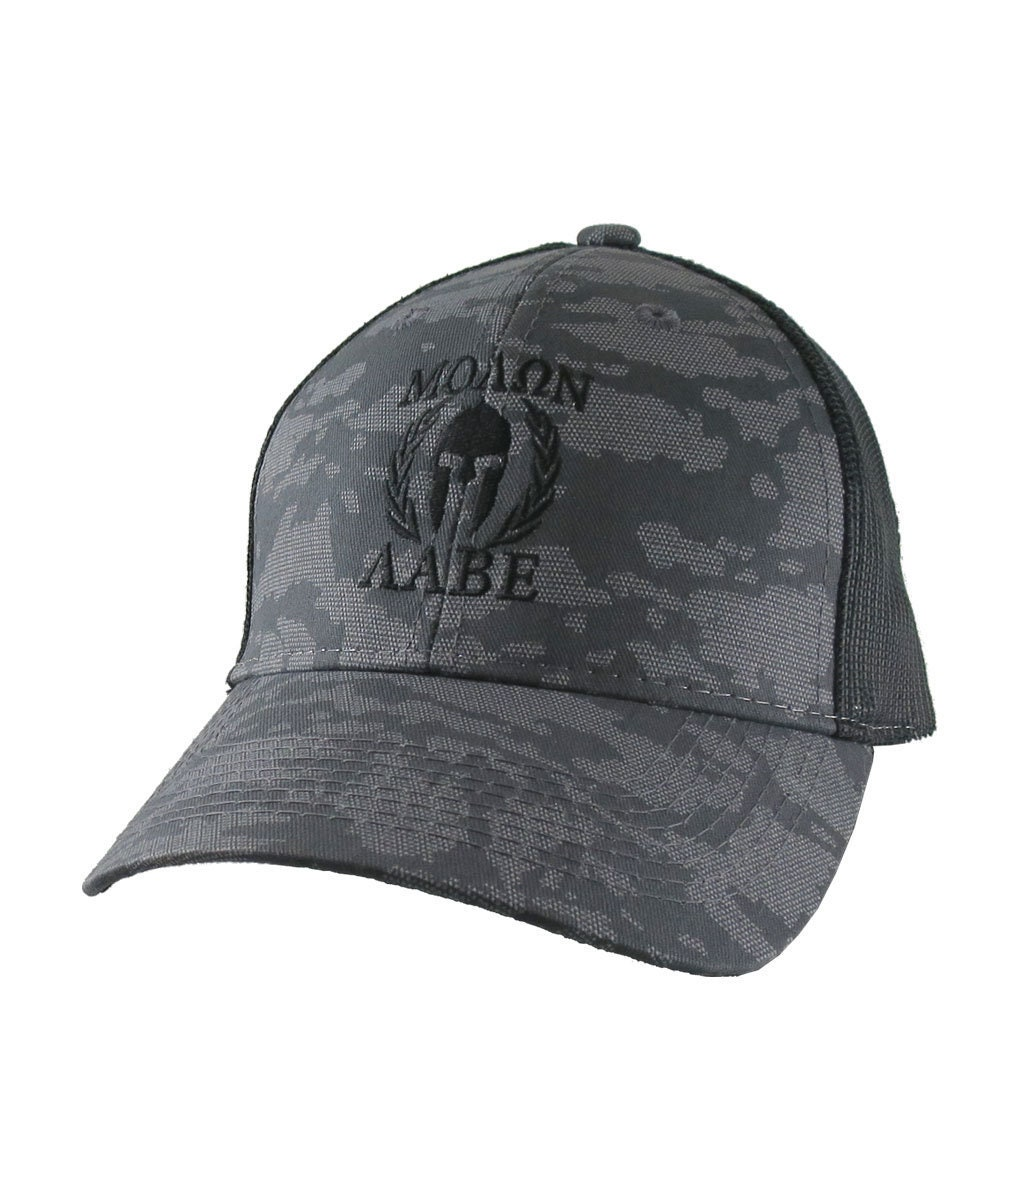 8511d928 Molon Labe Roman Spartan Warrior Mask in Laurels Black Embroidery on an  Adjustable Urban Camo Structured Trucker Style Snapback Ball Cap